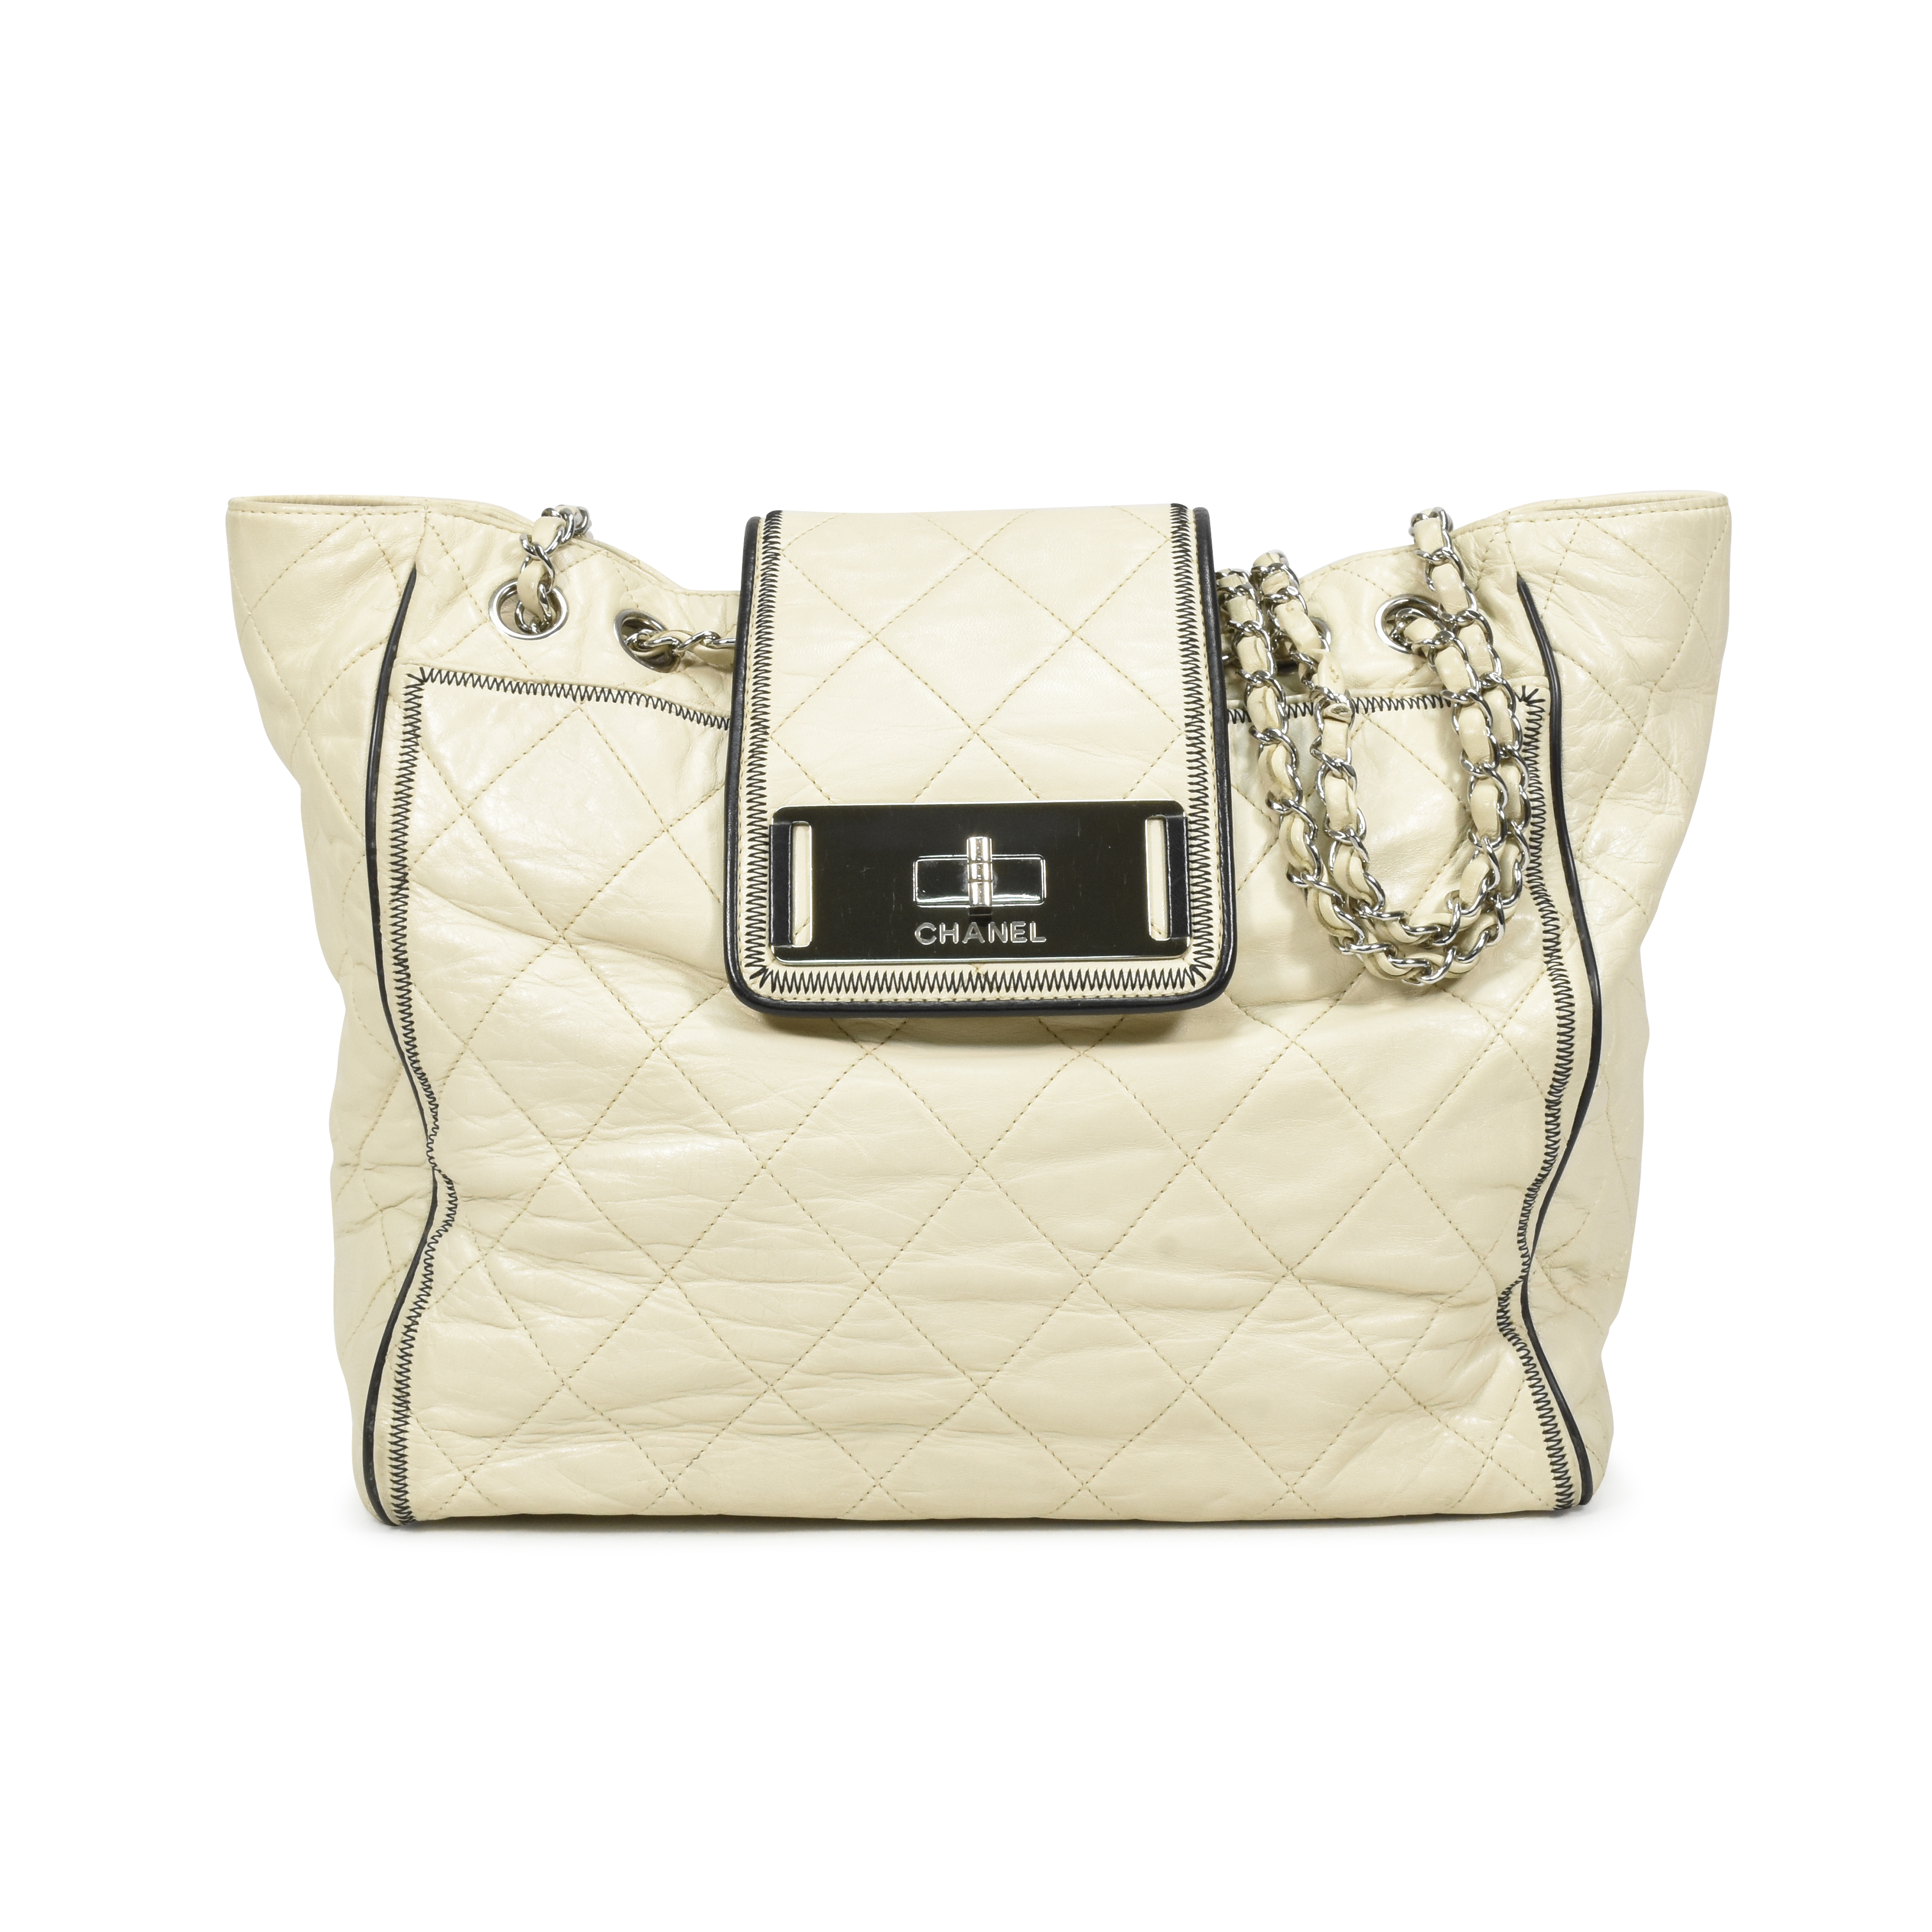 Second Hand Chanel Mademoie Lock East West Ping Tote The Fifth Collection